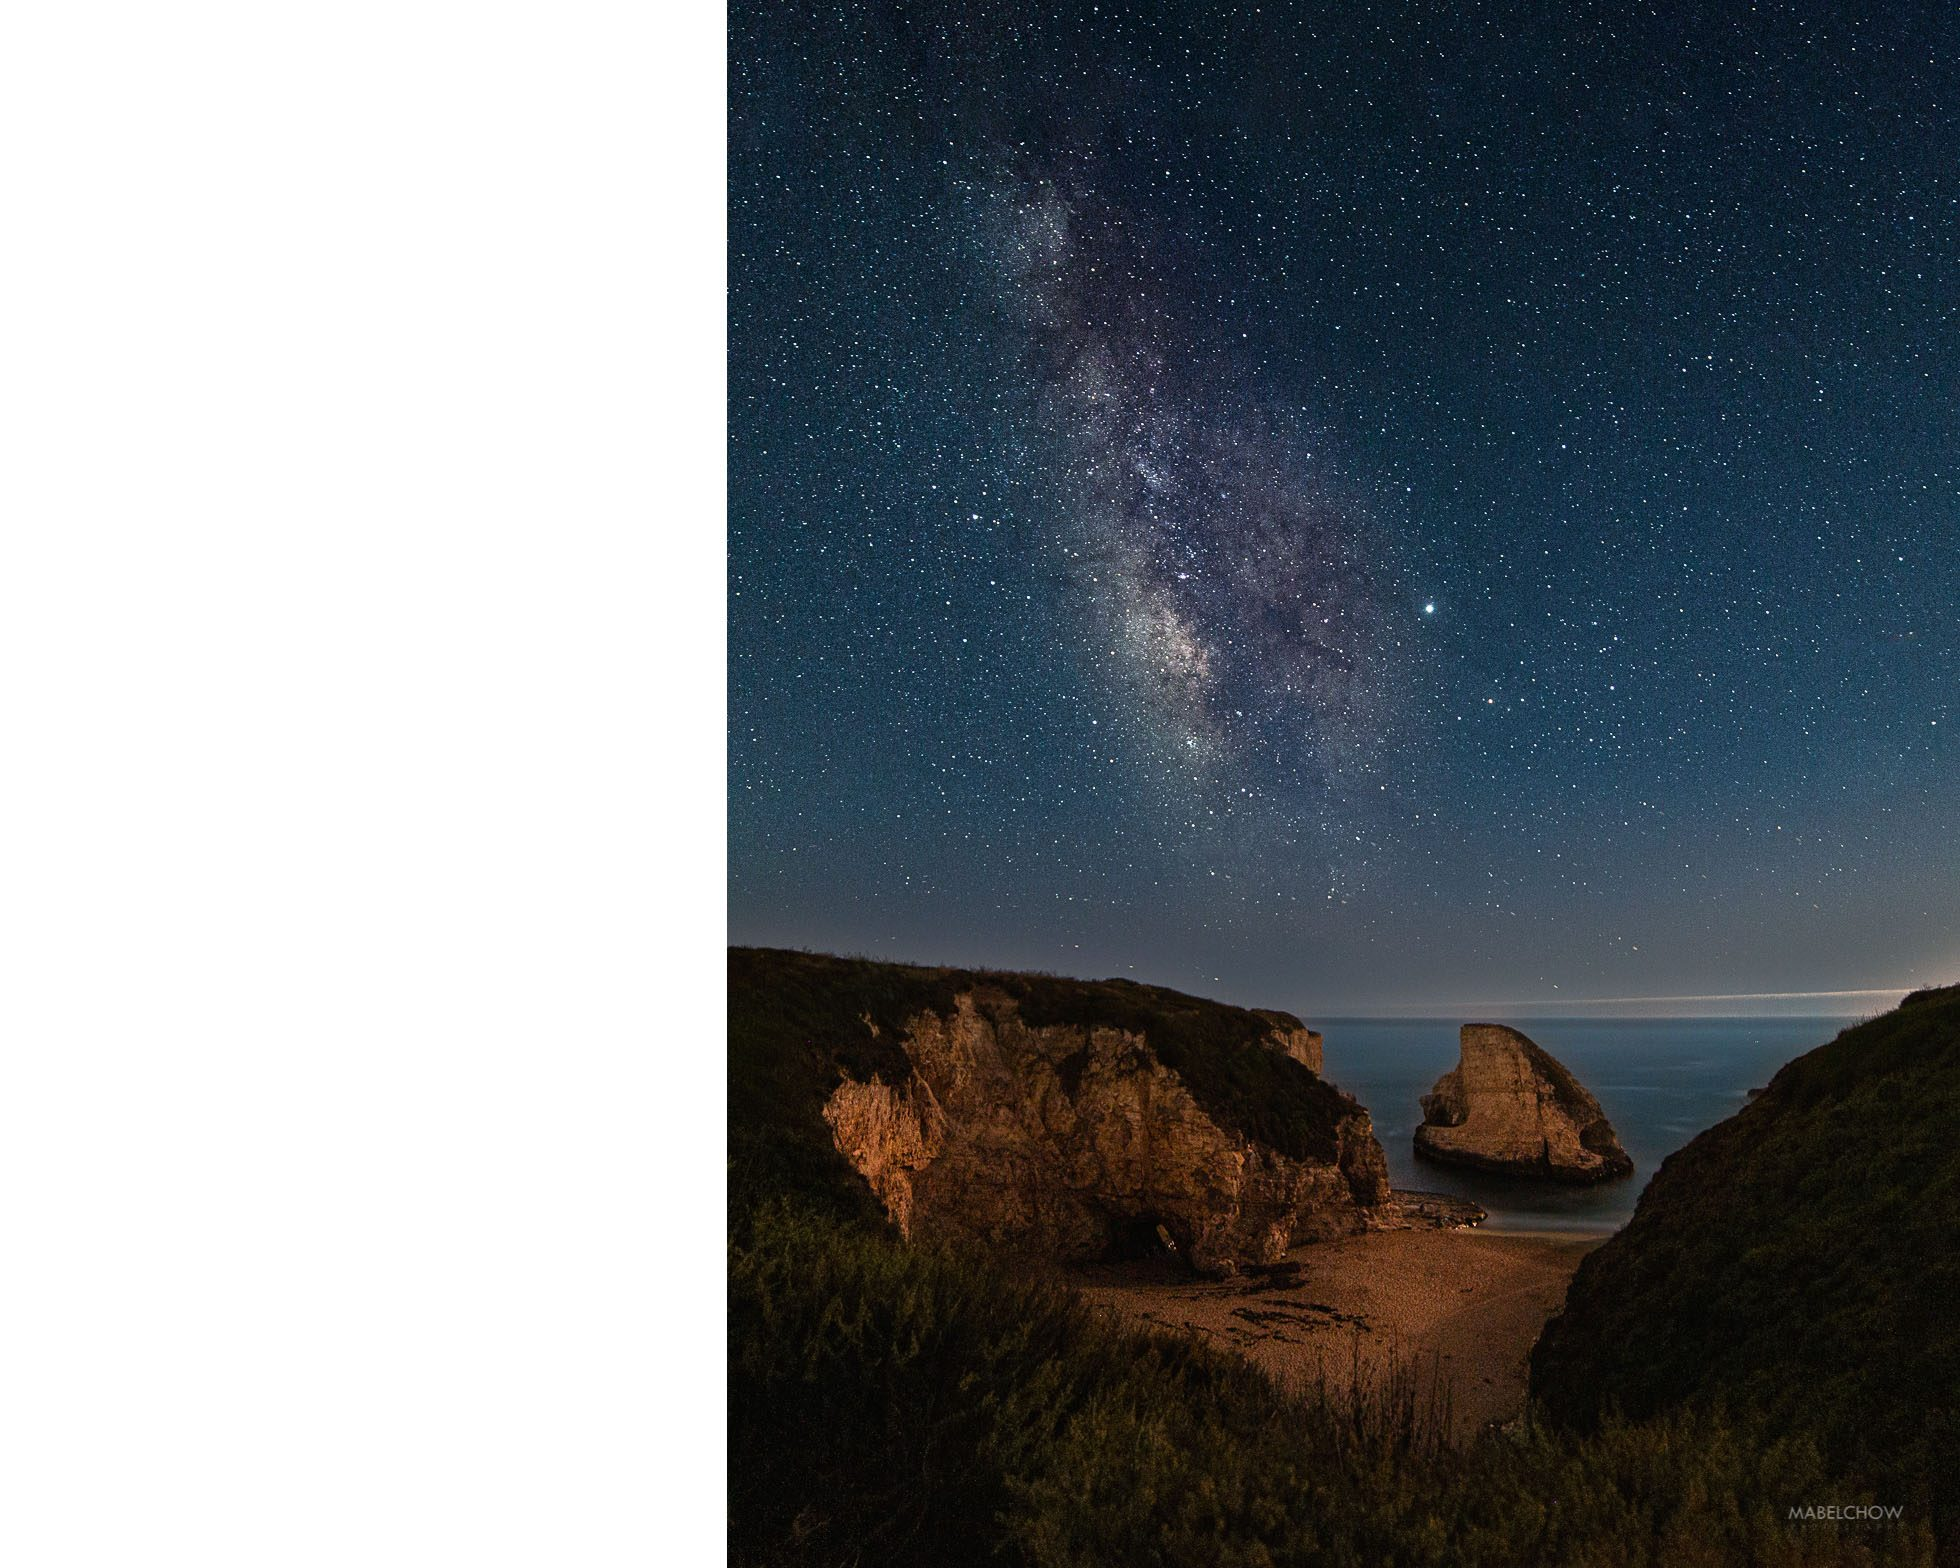 mabel_chow_milky_way_over_shark_fin_cove